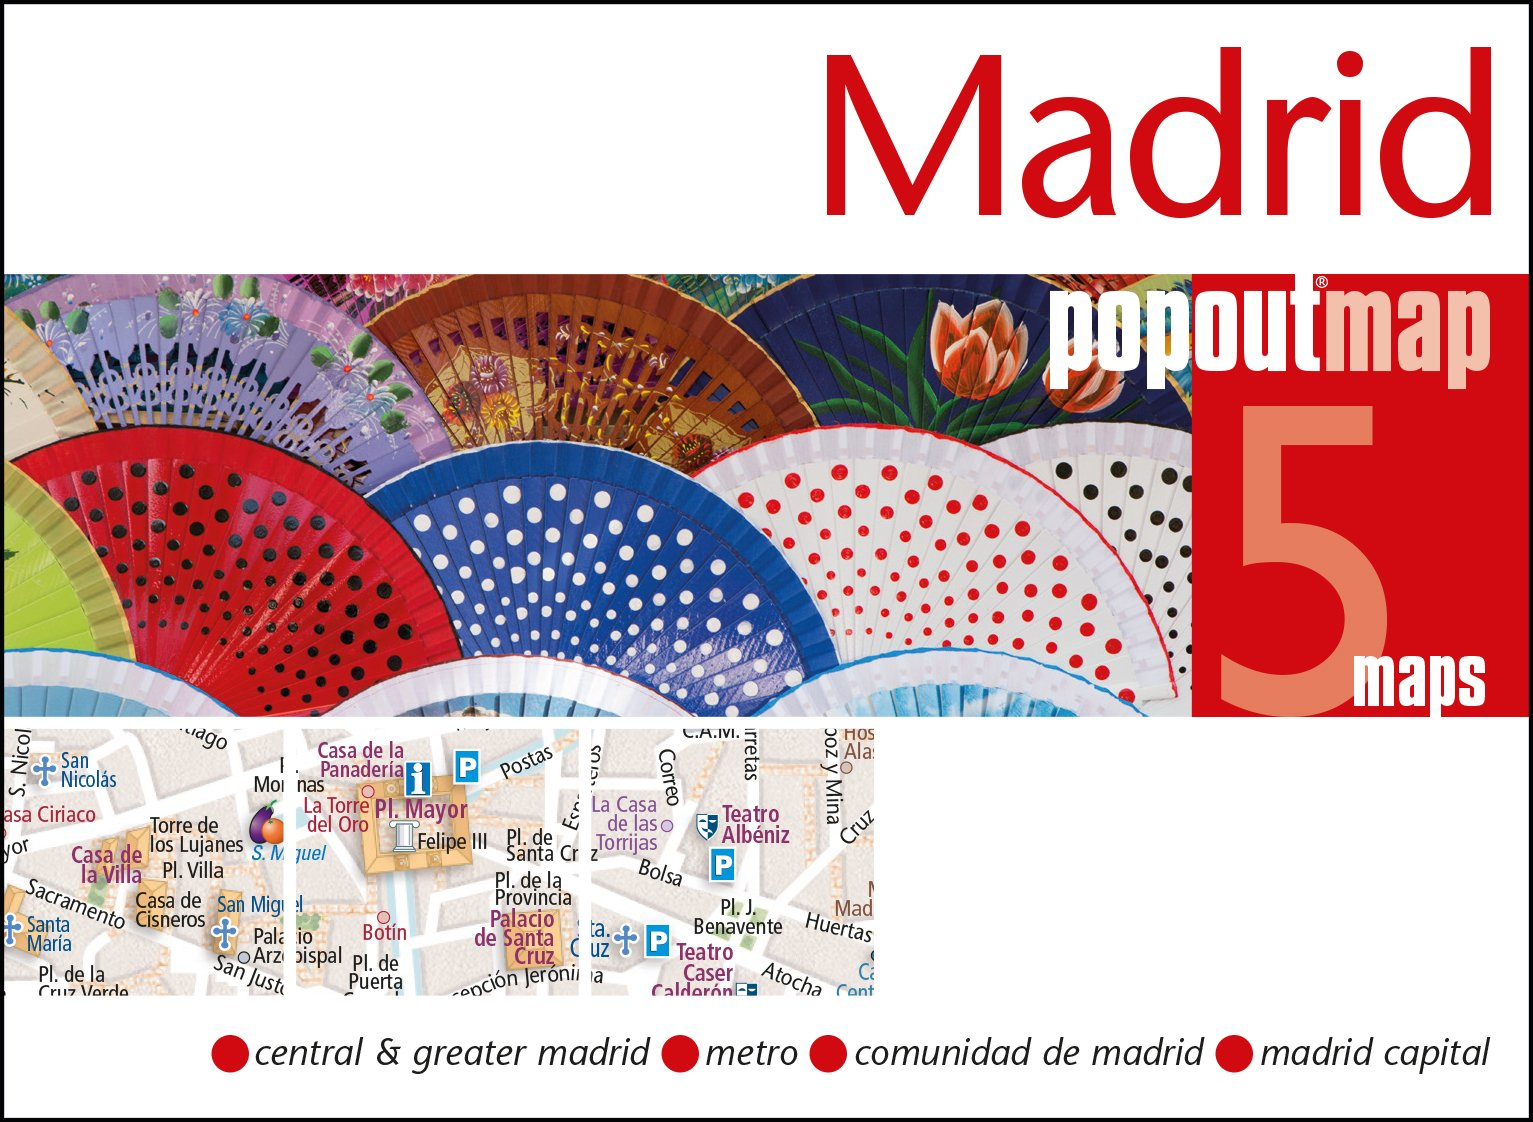 Madrid (Popout)